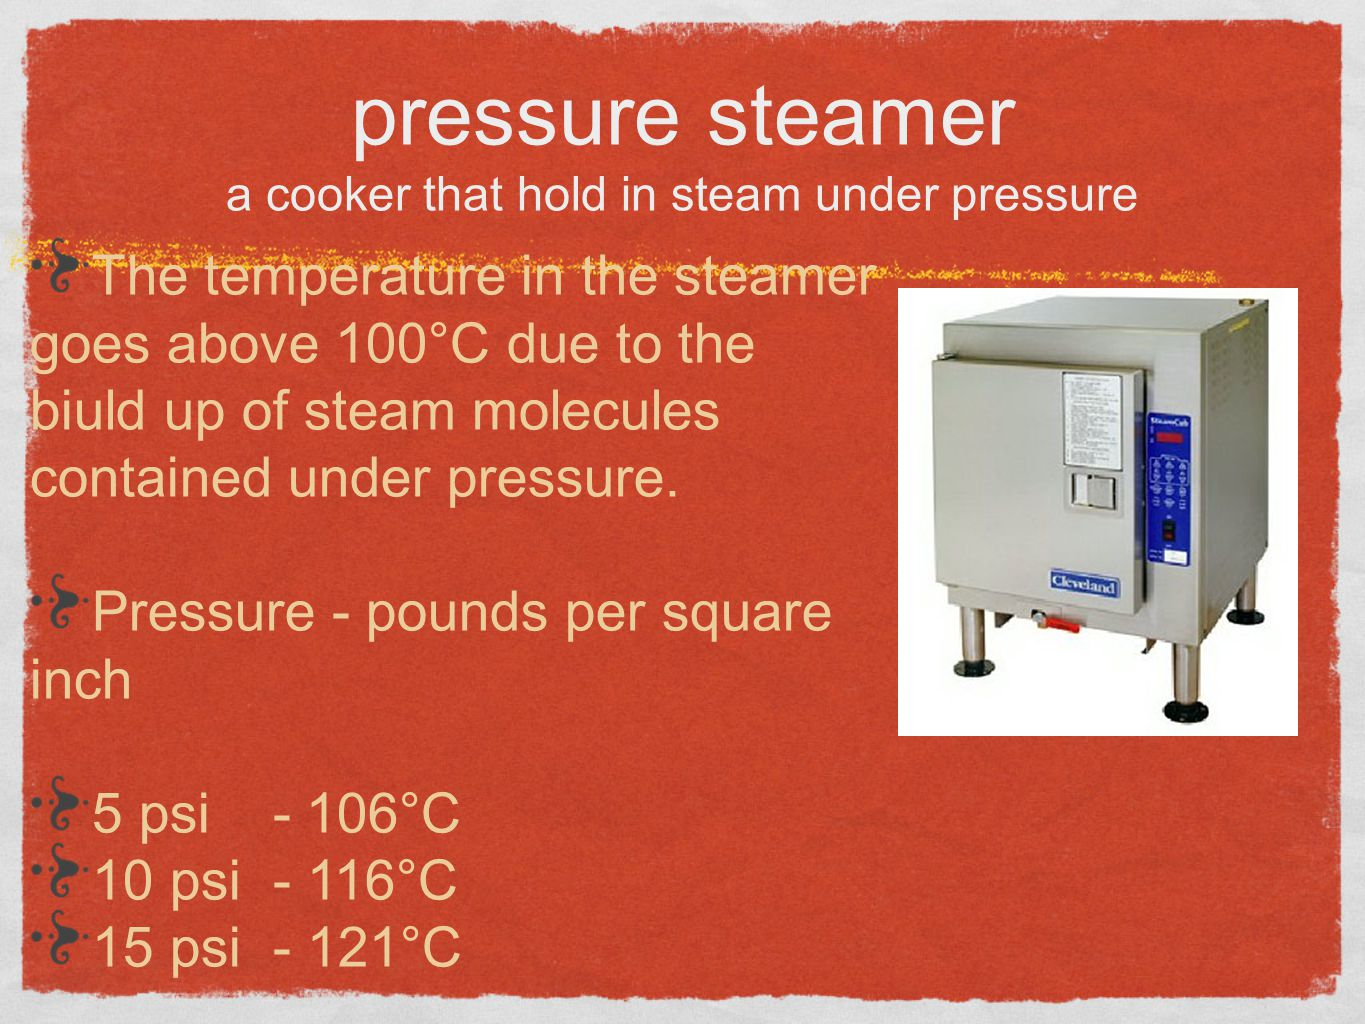 pressure steamer a cooker that hold in steam under pressure The temperature in the steamer goes above 100°C due to the biuld up of steam molecules con